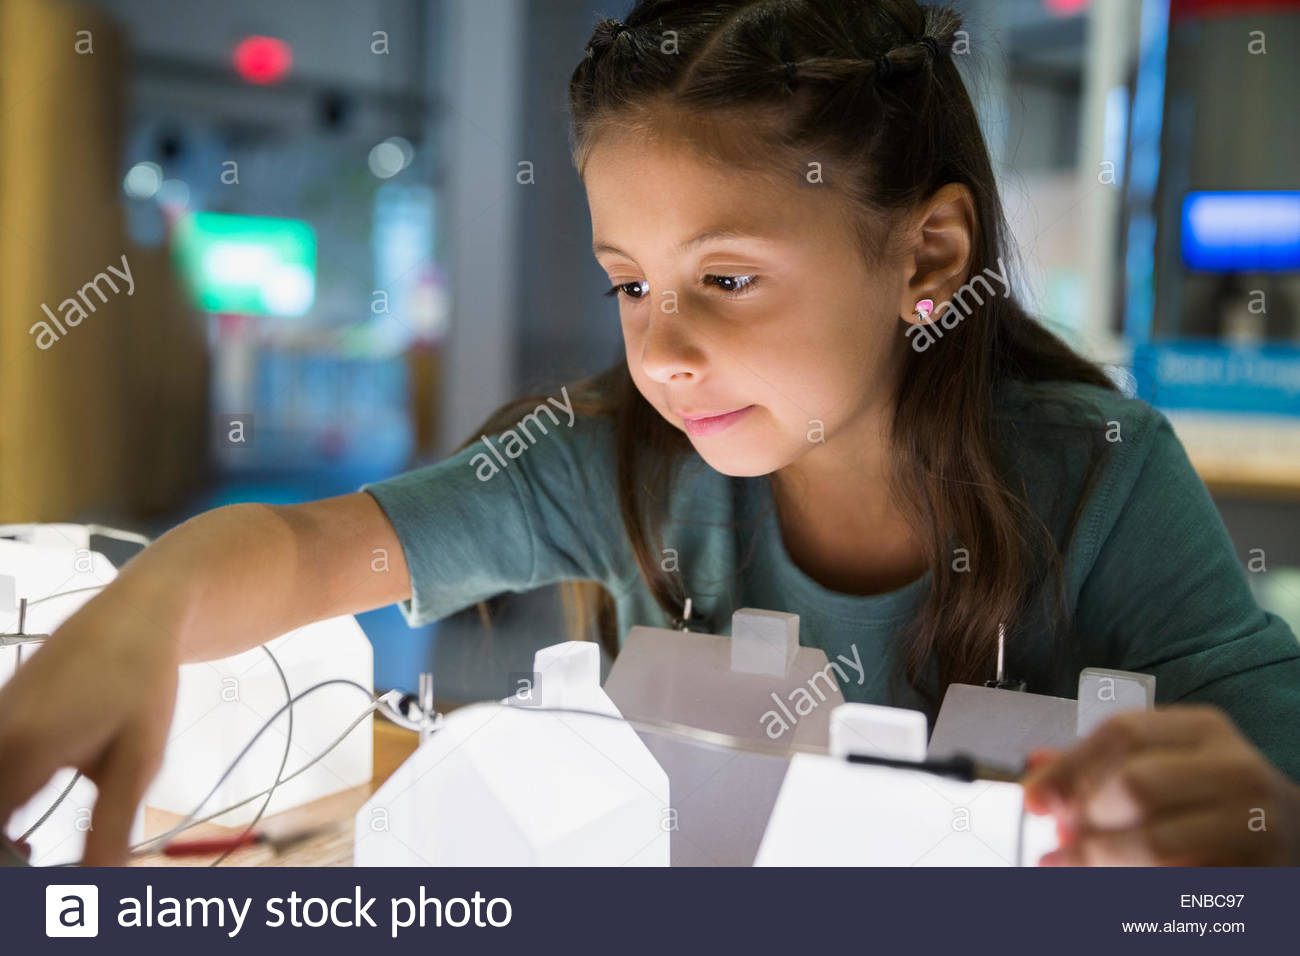 Curious girl playing at electricity grid science center - Stock Image